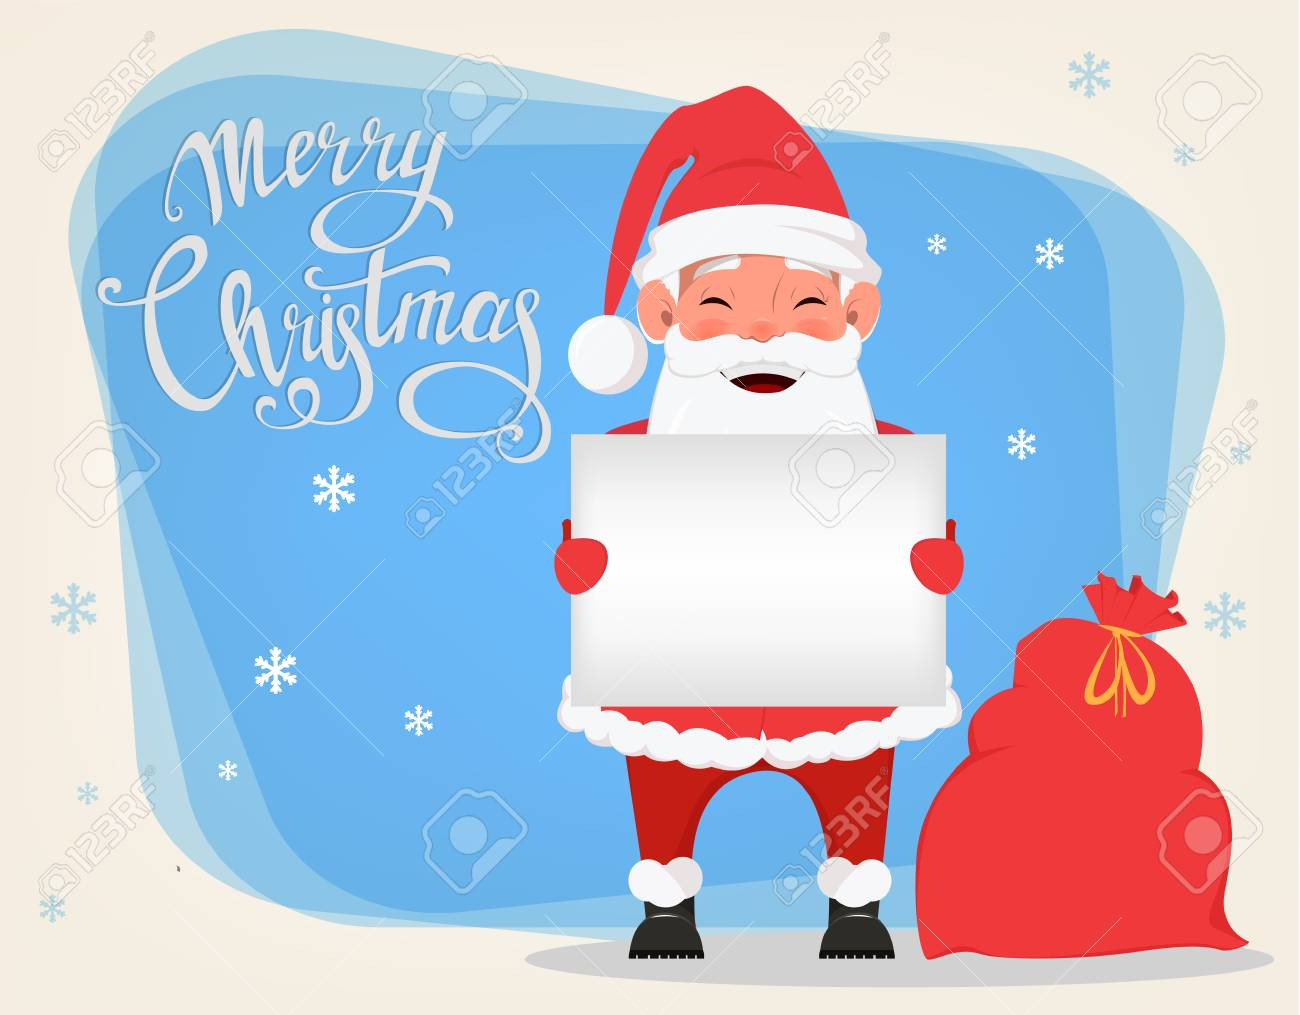 Merry Christmas And A Happy New Year Greeting Card With Smiling